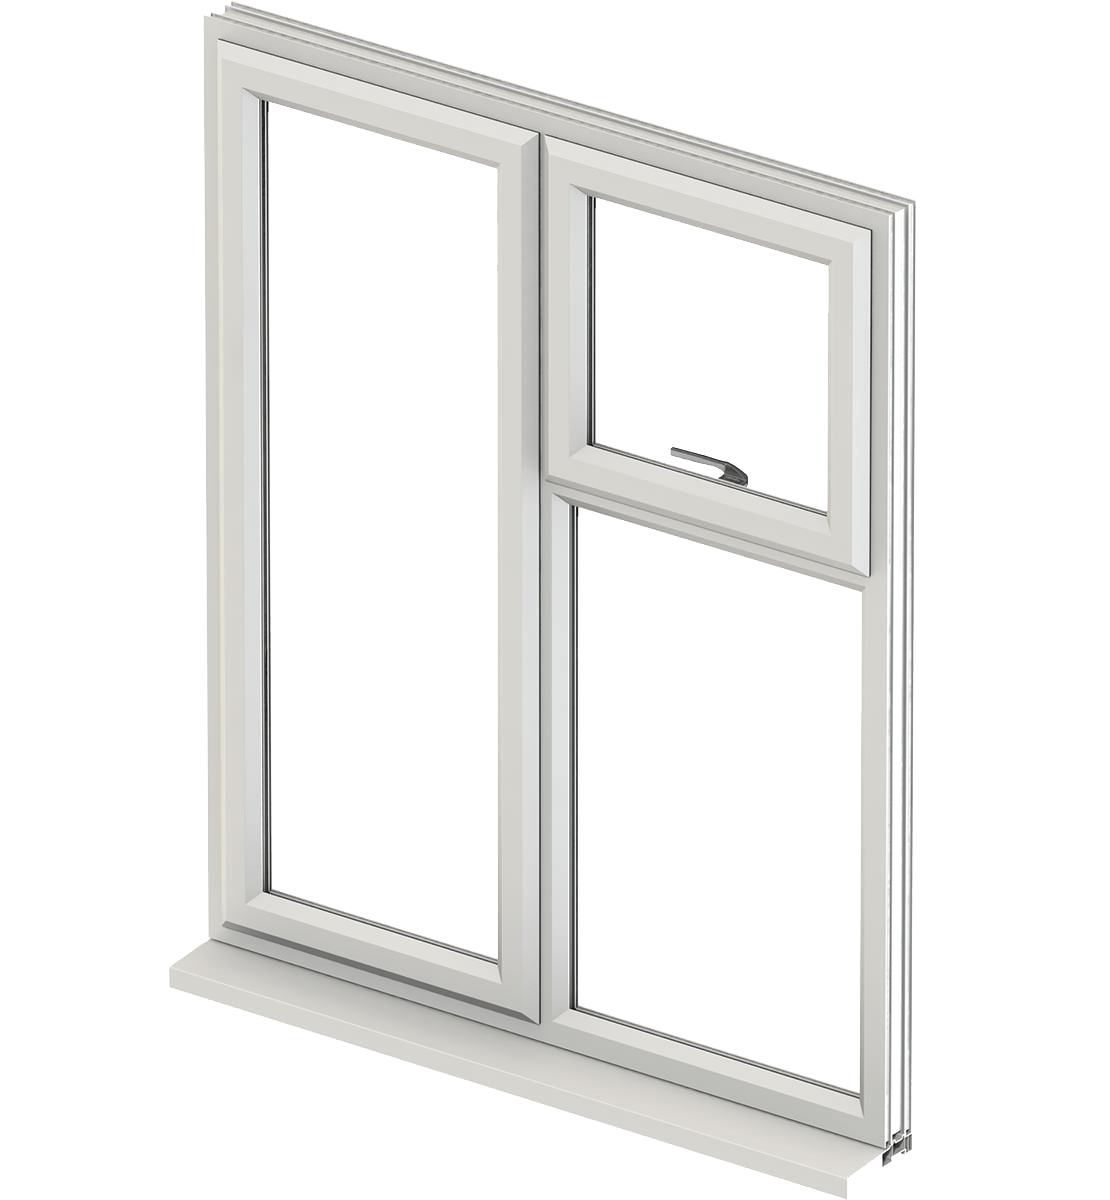 Upvc Casement Windows Fleet Casement Window Prices